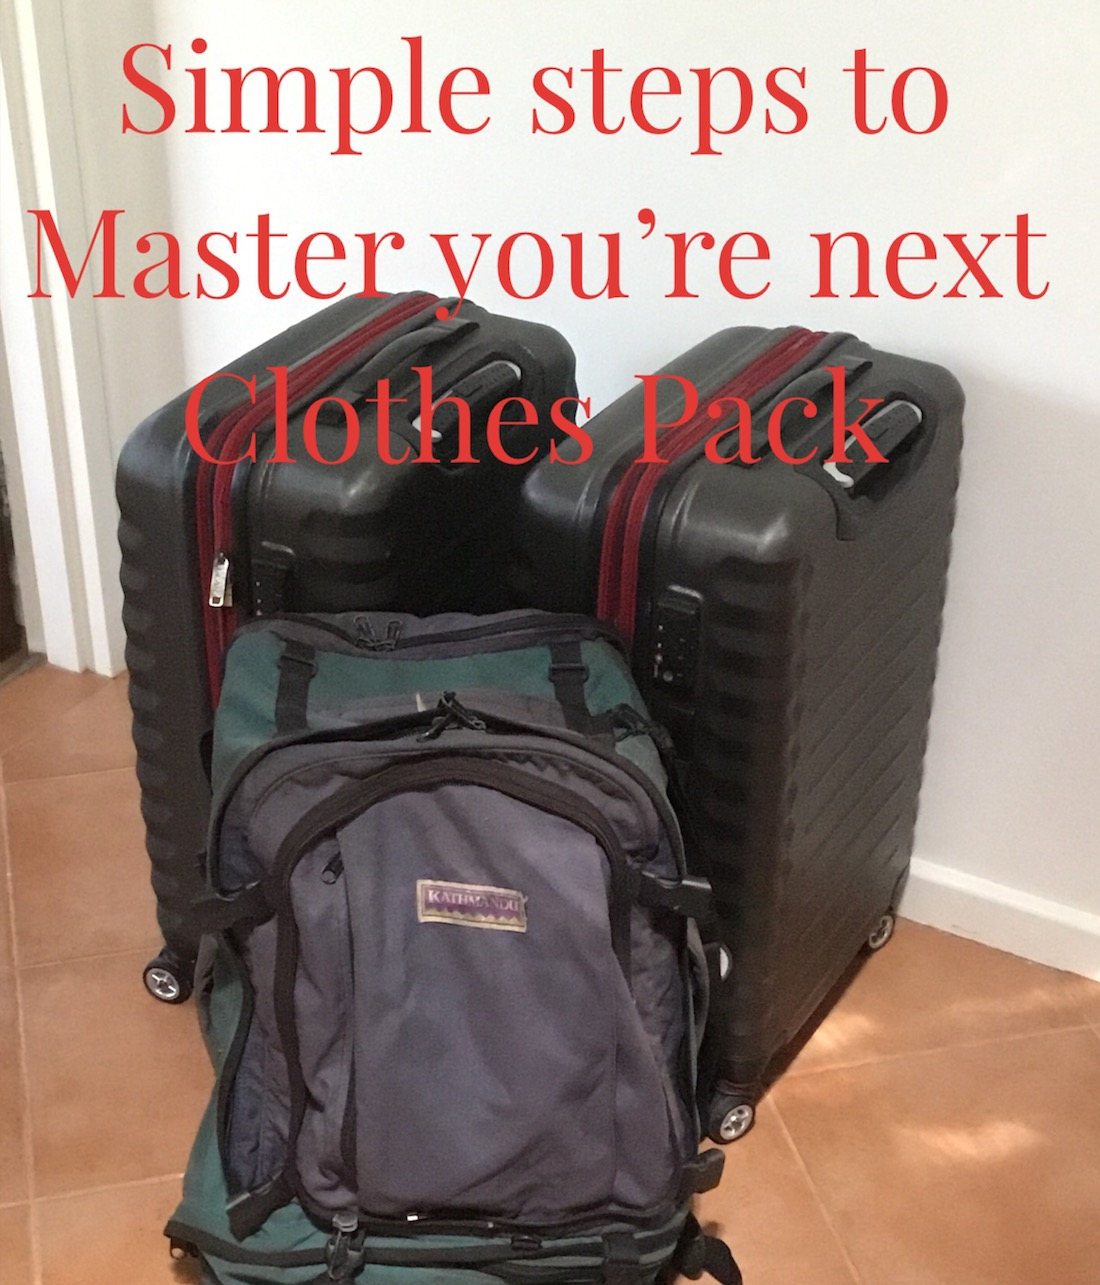 Simple steps to master your next clothes pack